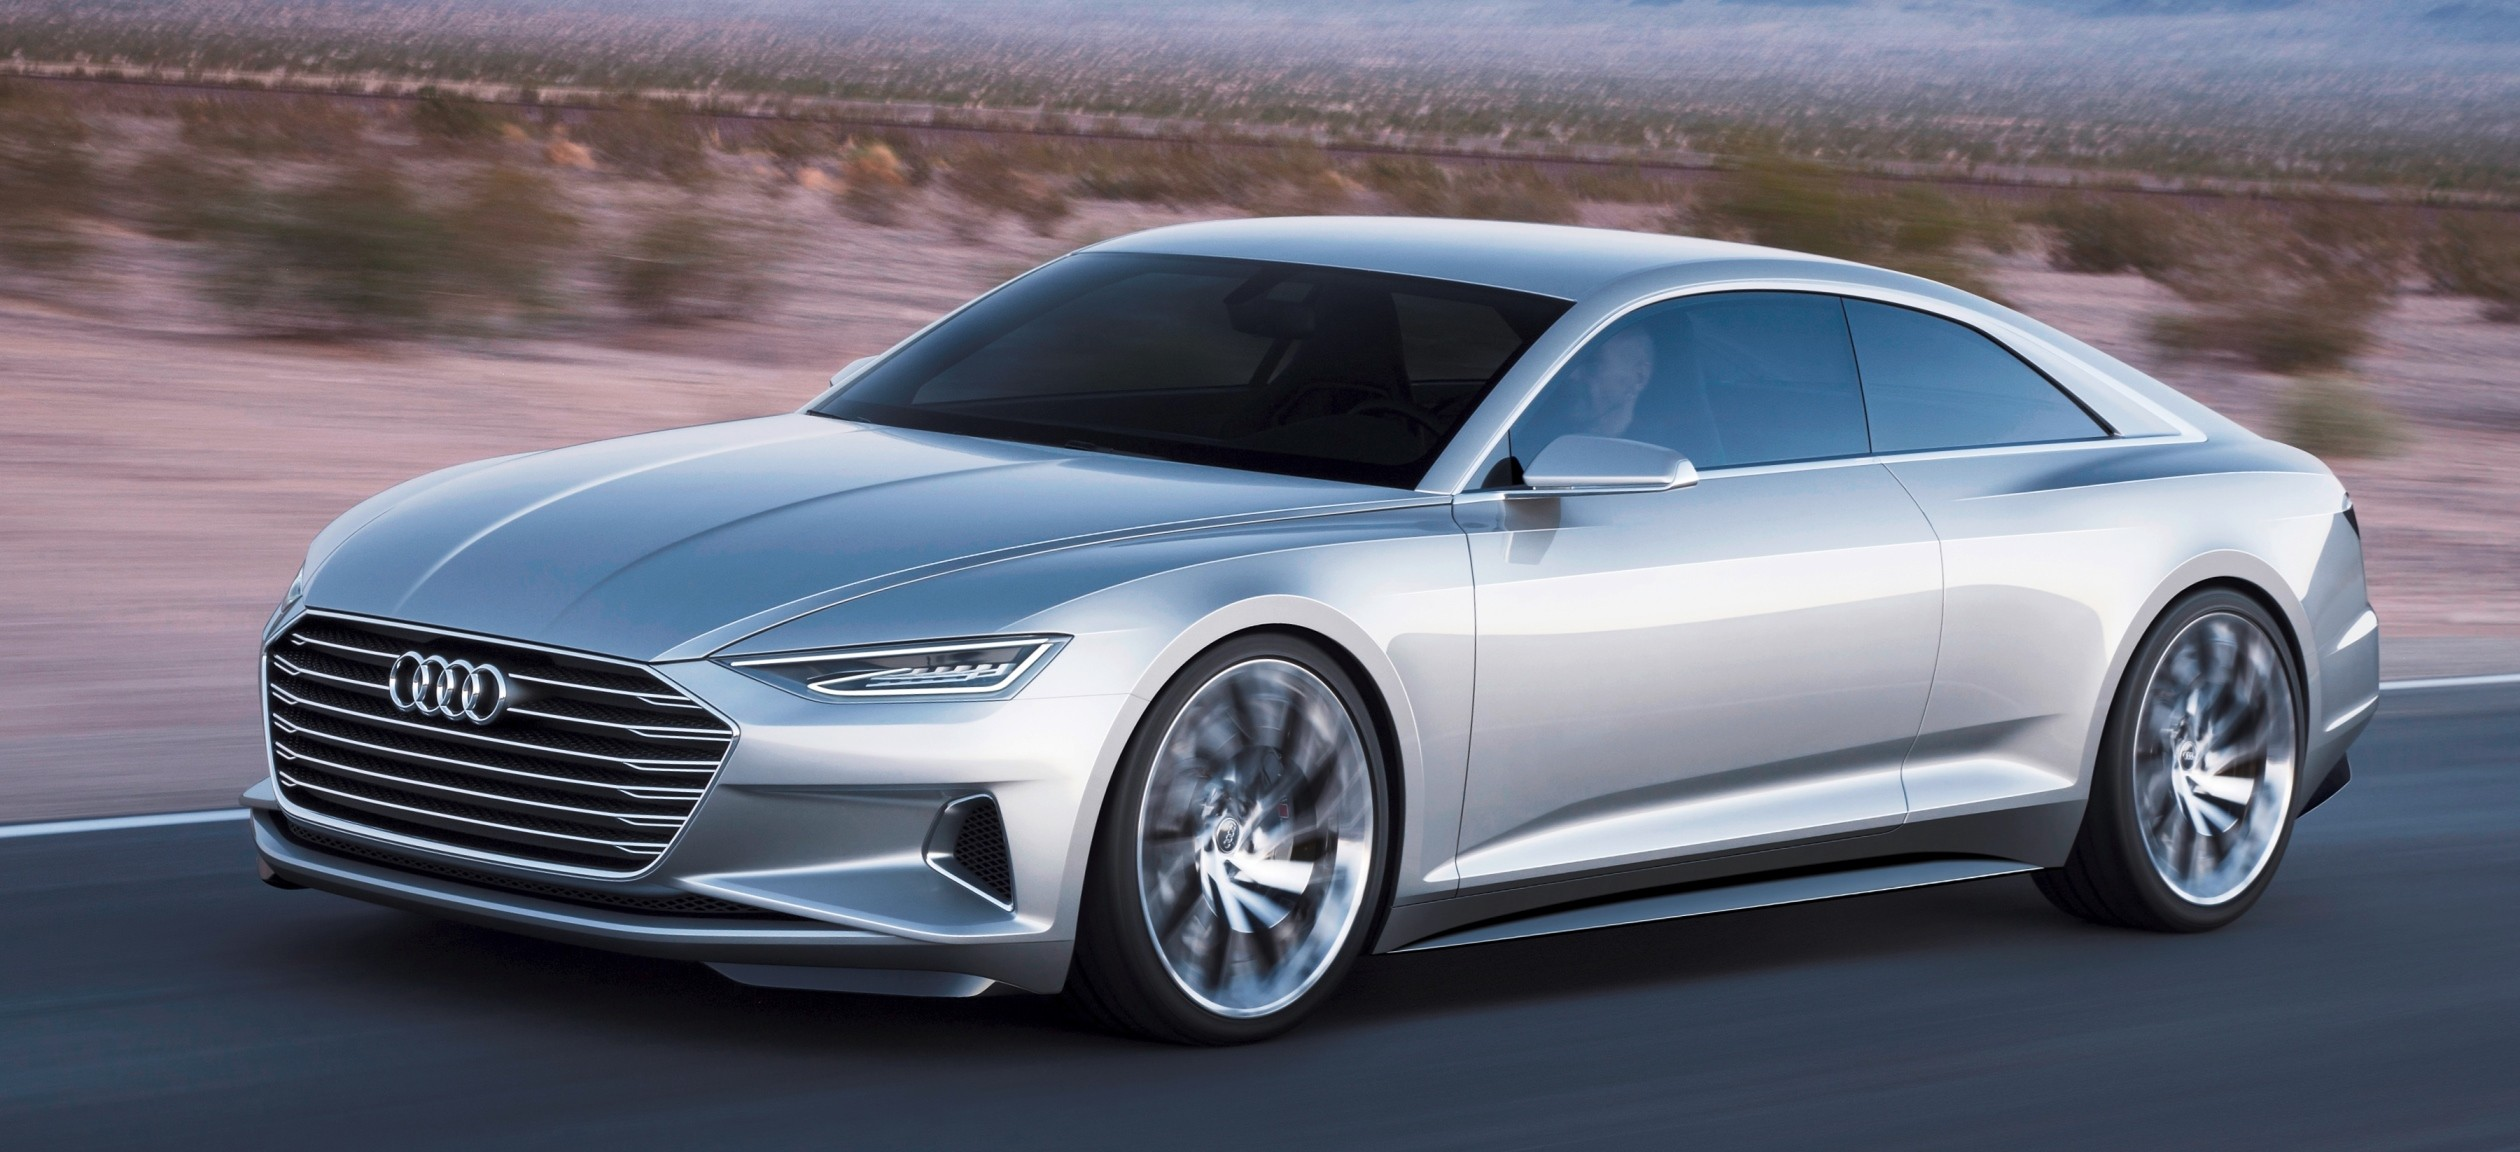 2014 Audi Prologue is Worst of LA 2014 25